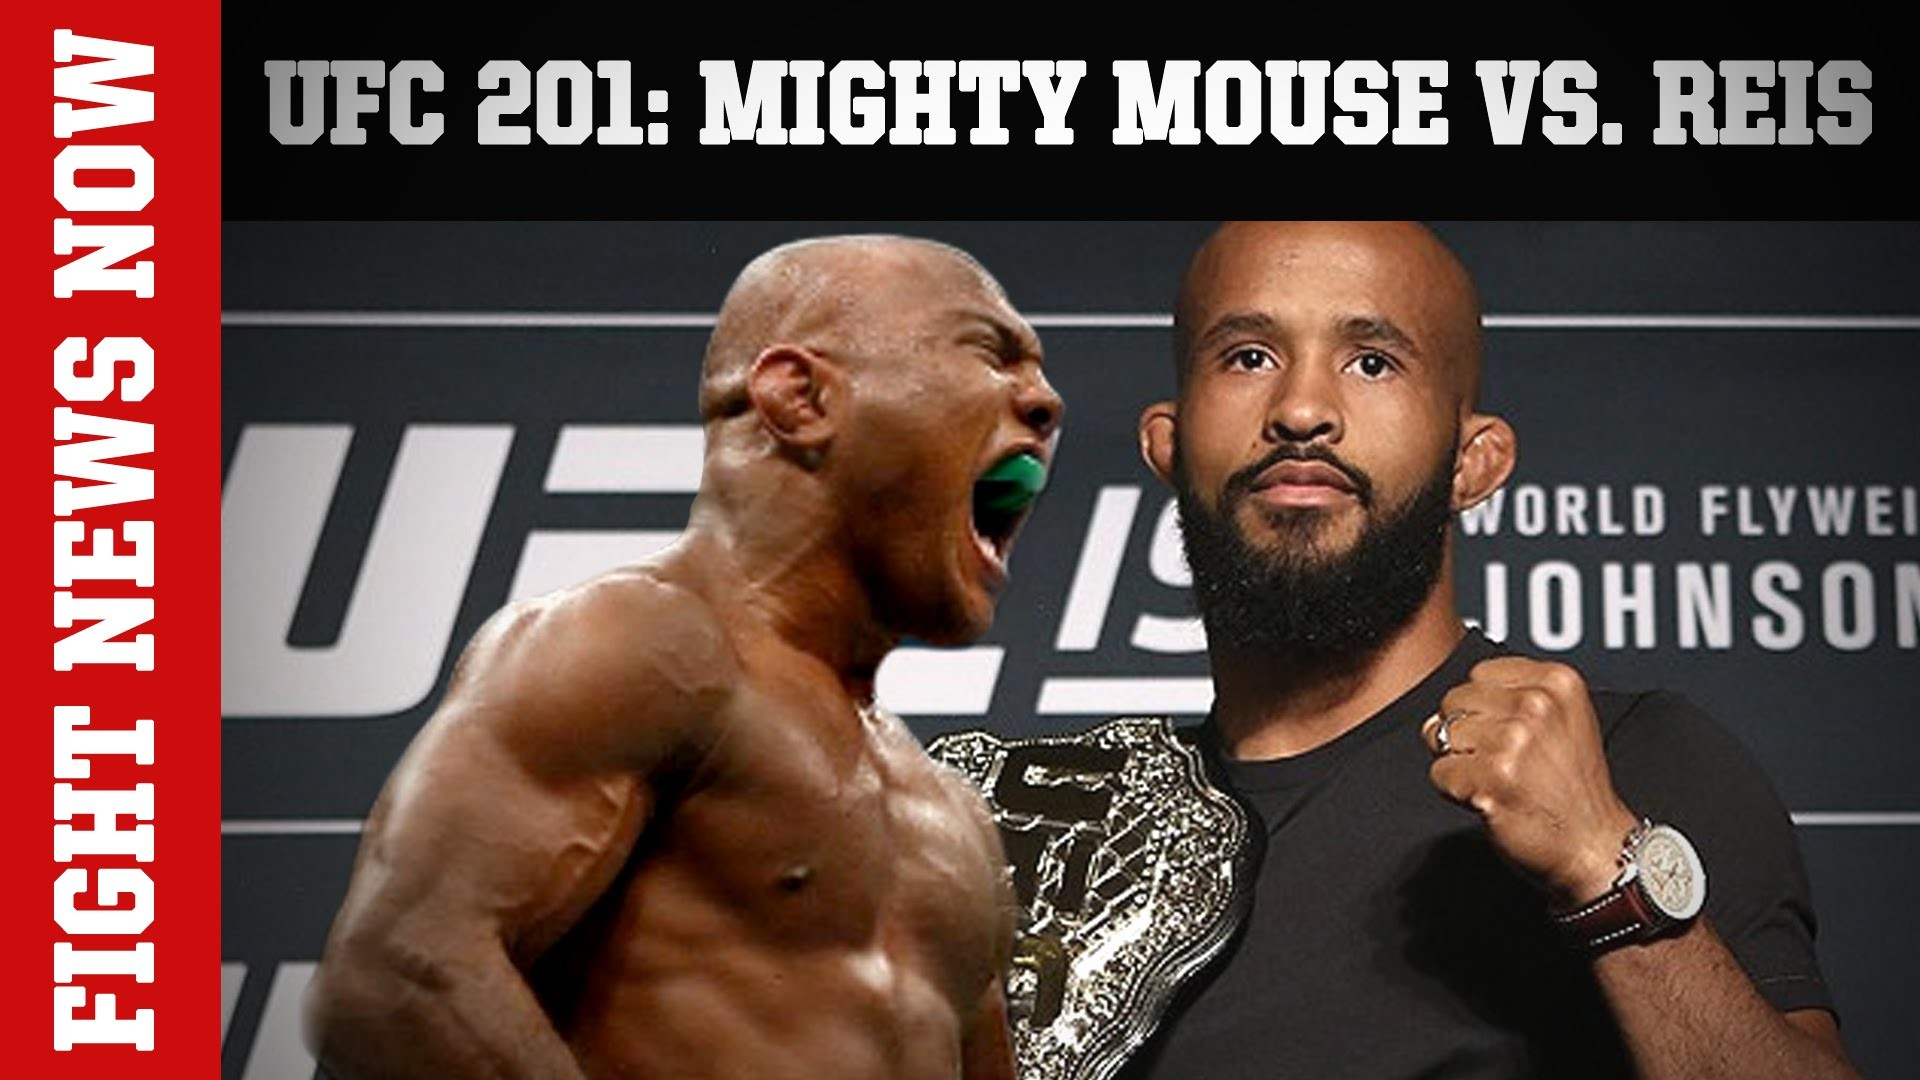 Res: 1920x1080, UFC 201: Mighty Mouse vs. Reis, TUF 24: Flyweight Contenders & More on  Fight News Now - YouTube